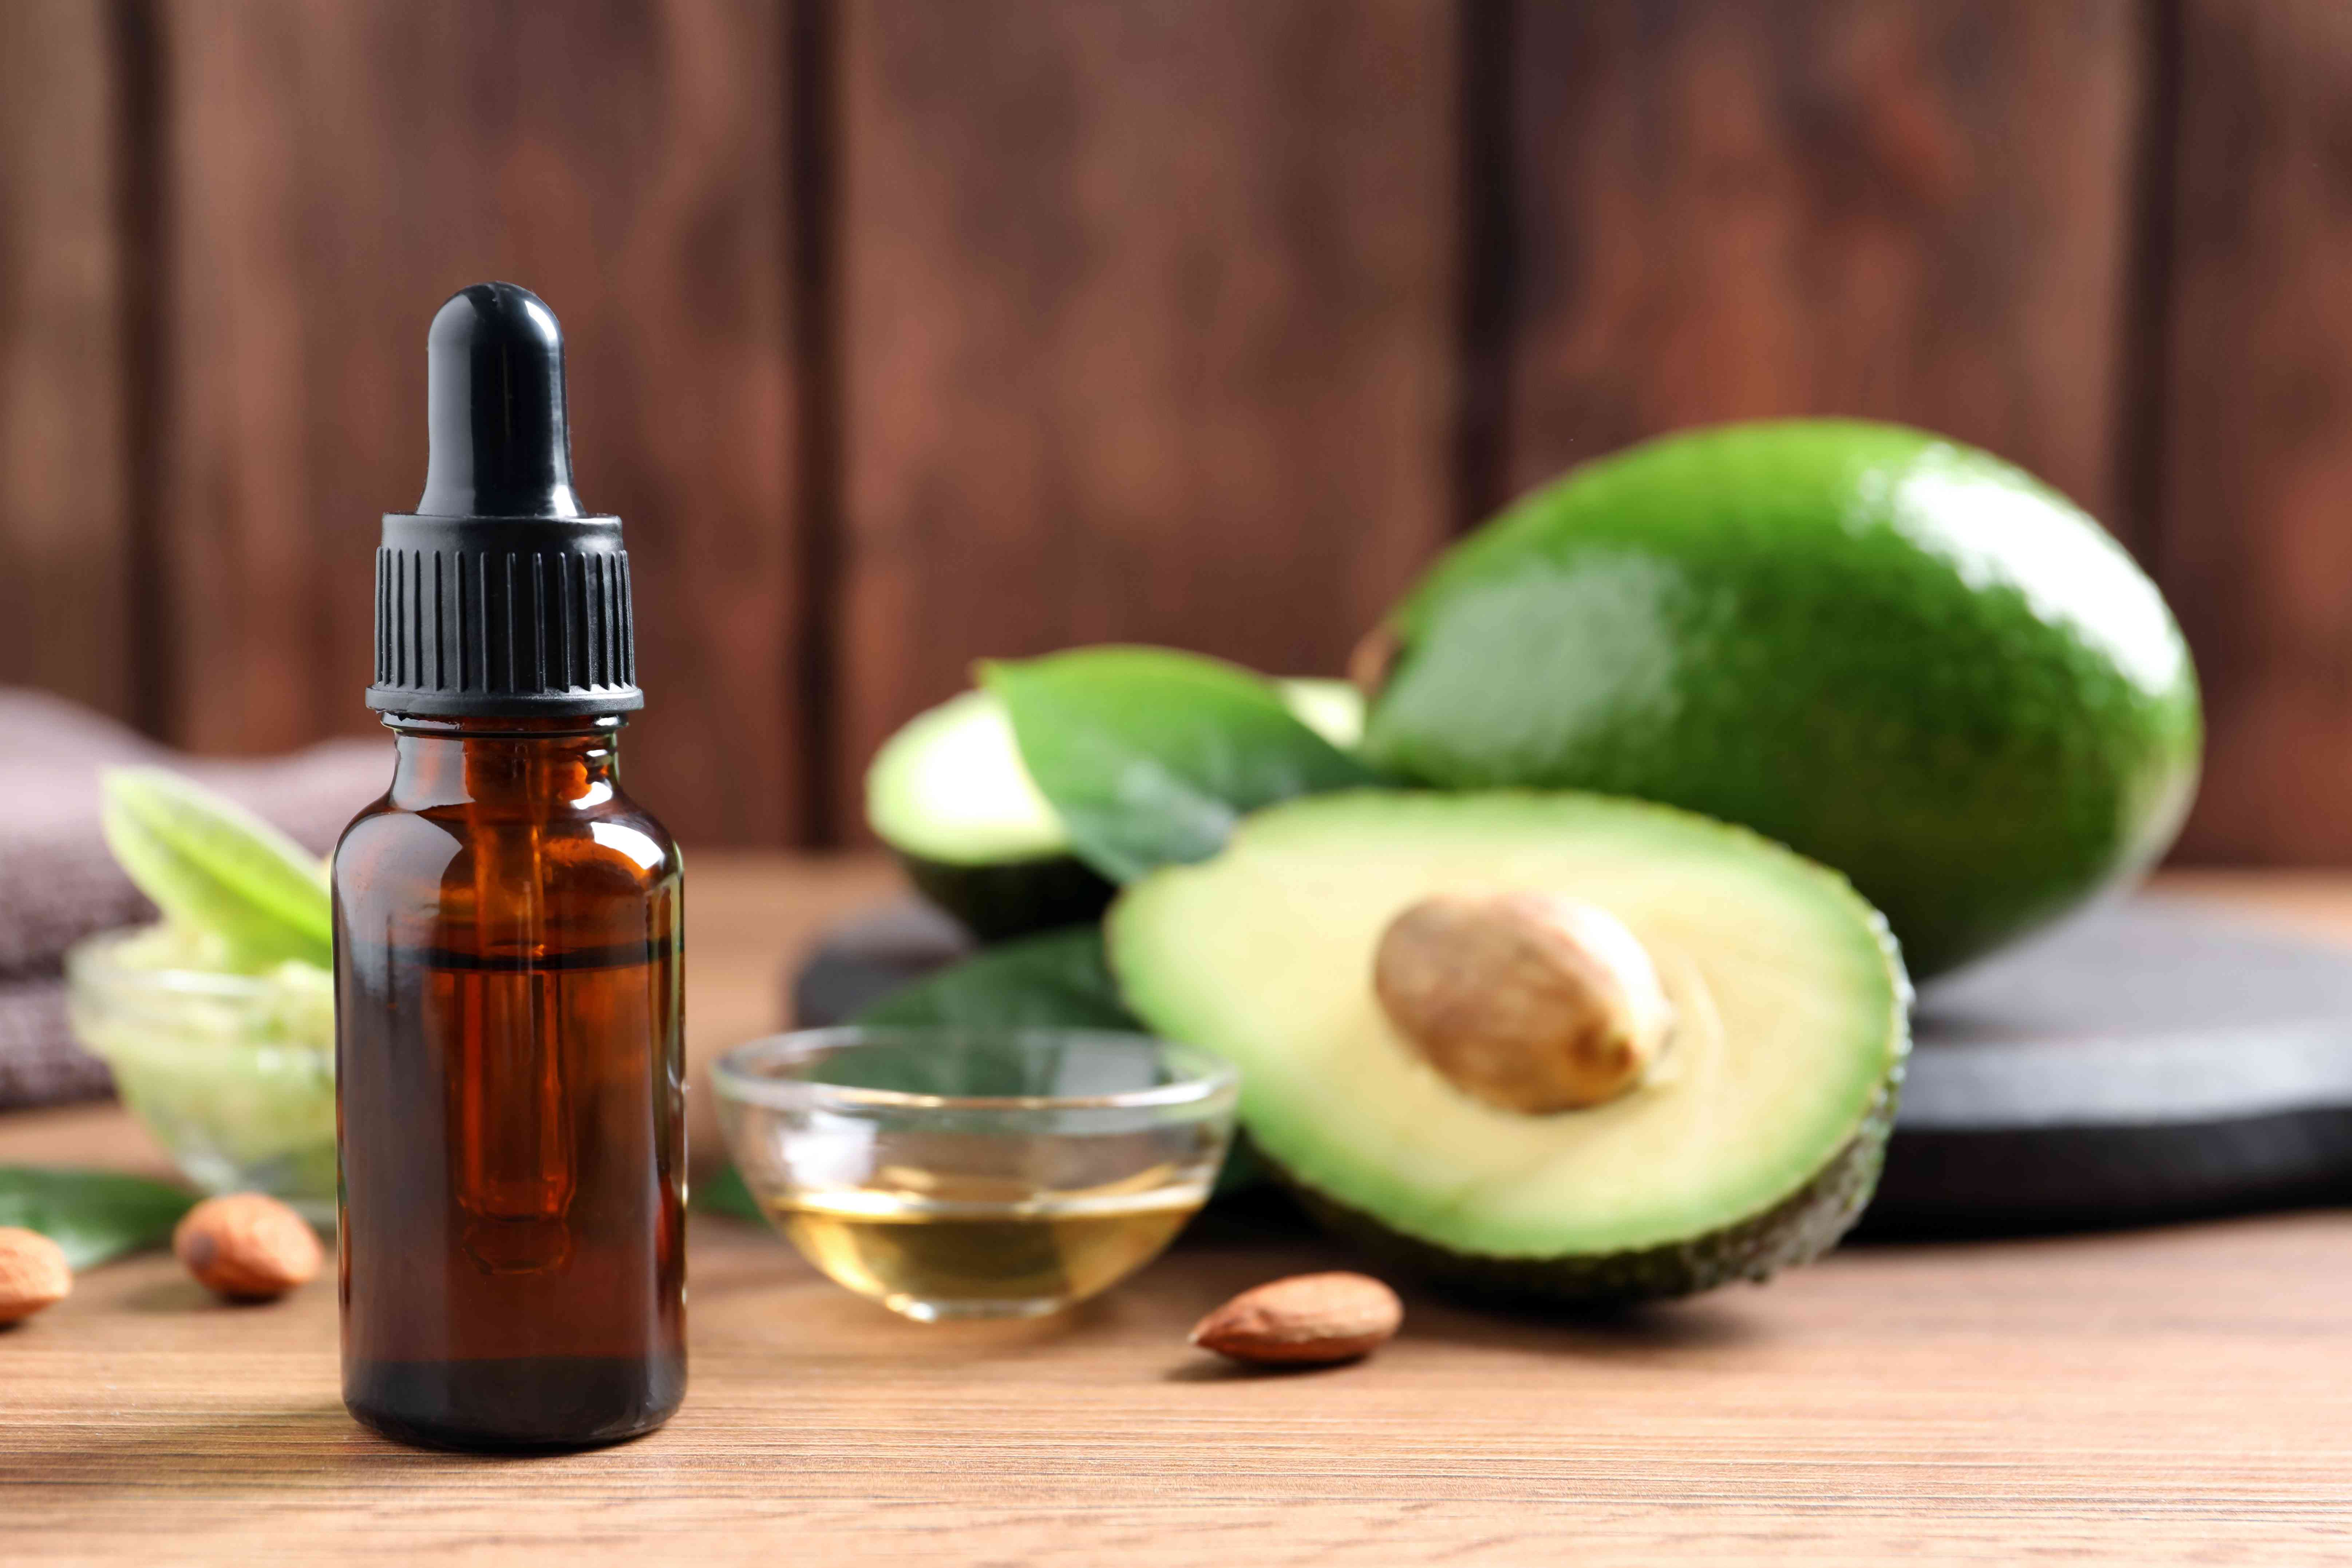 Bottle of essential oil, fresh avocado and almonds on wooden table, space for text